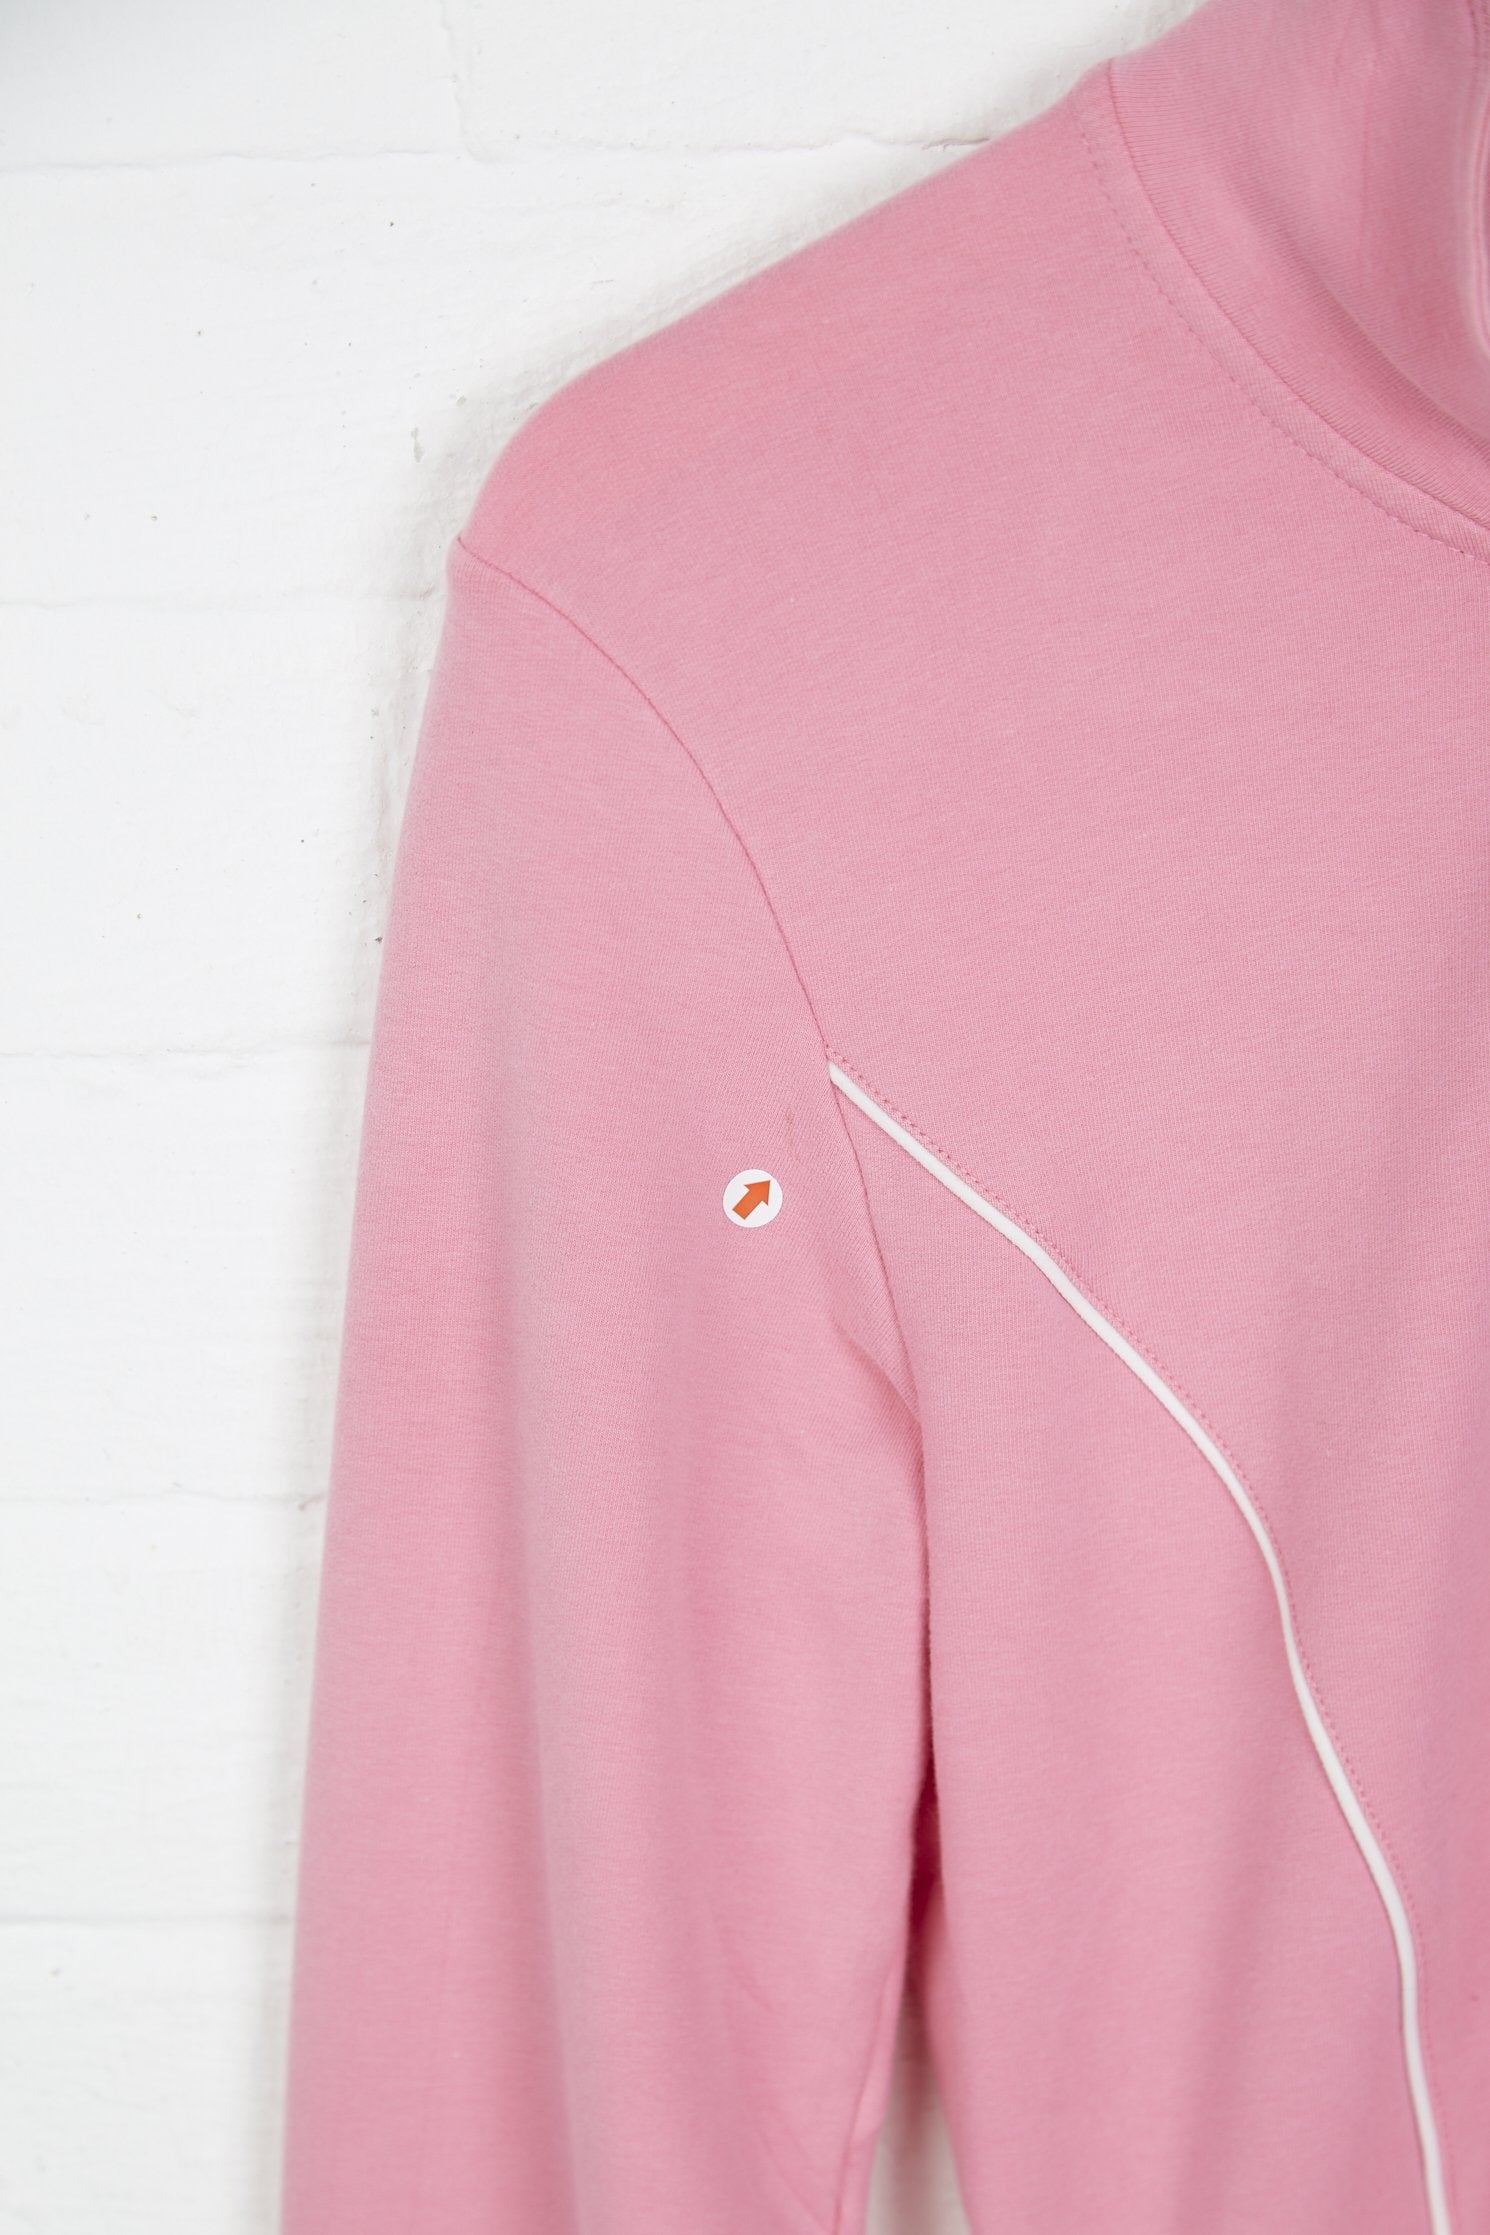 Vintage Nike Track Jacket - XS Pink Cotton - Thrifted.com